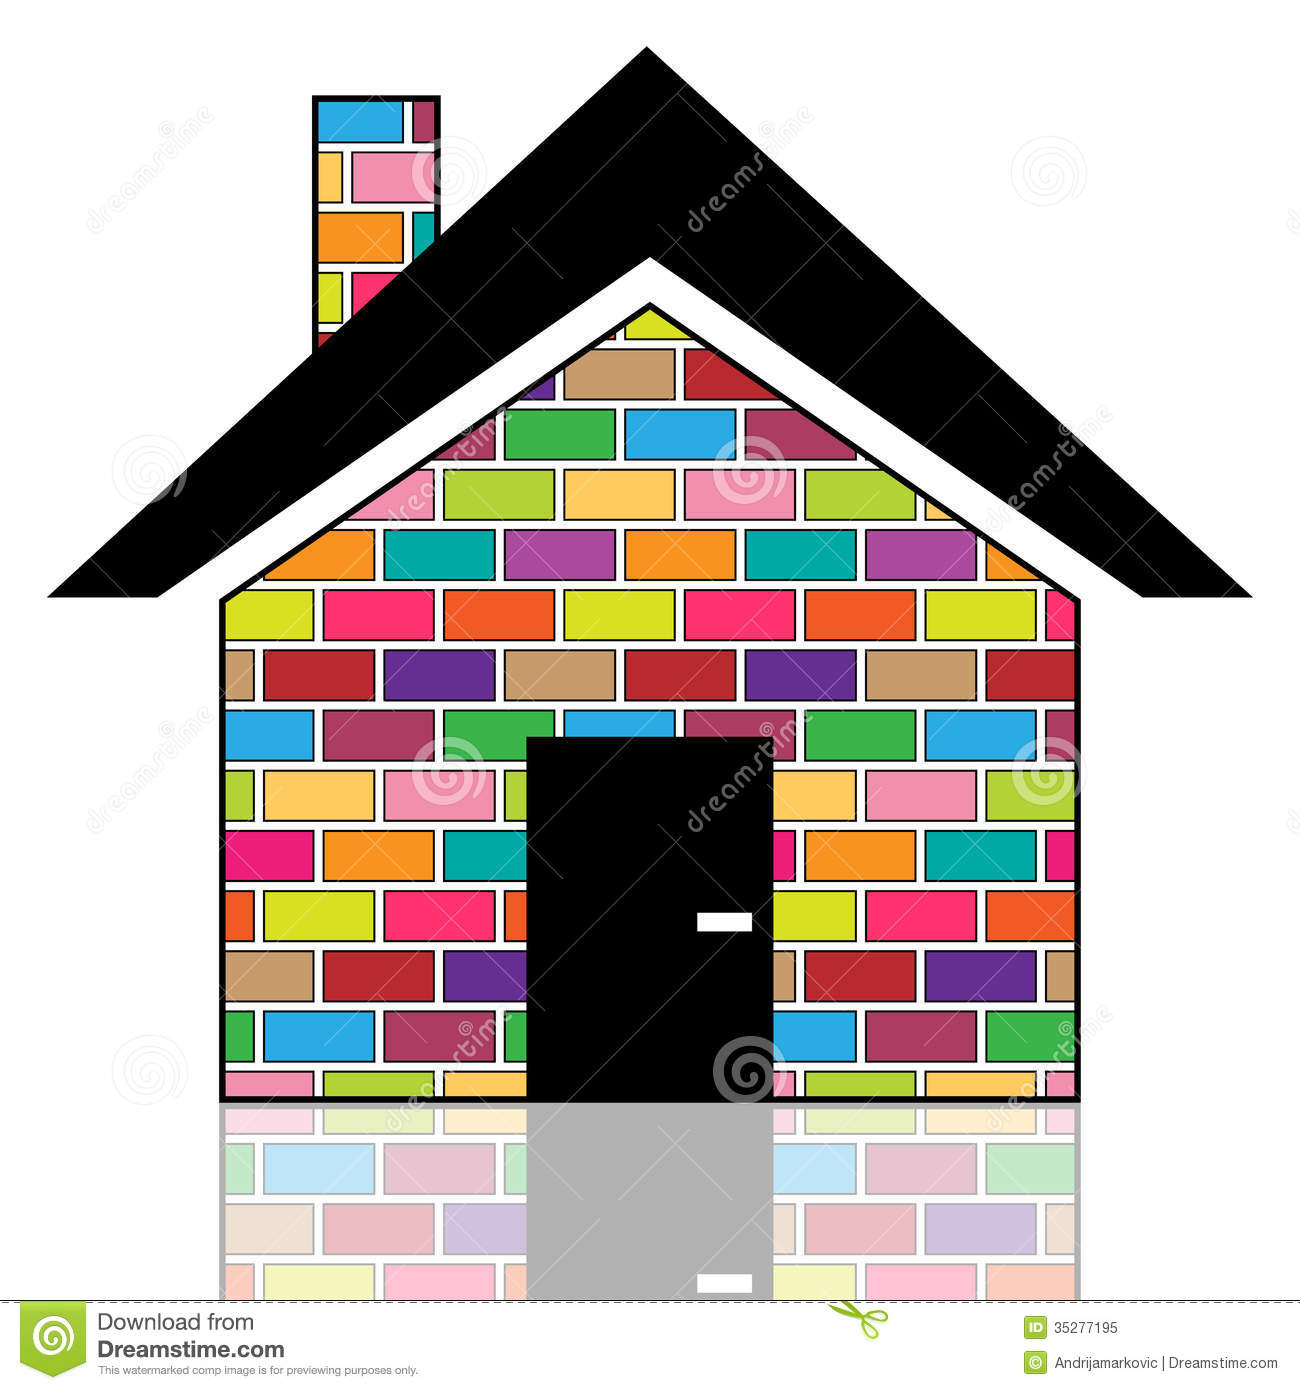 Colorful House a colorful house royalty free stock photo - image: 35277195